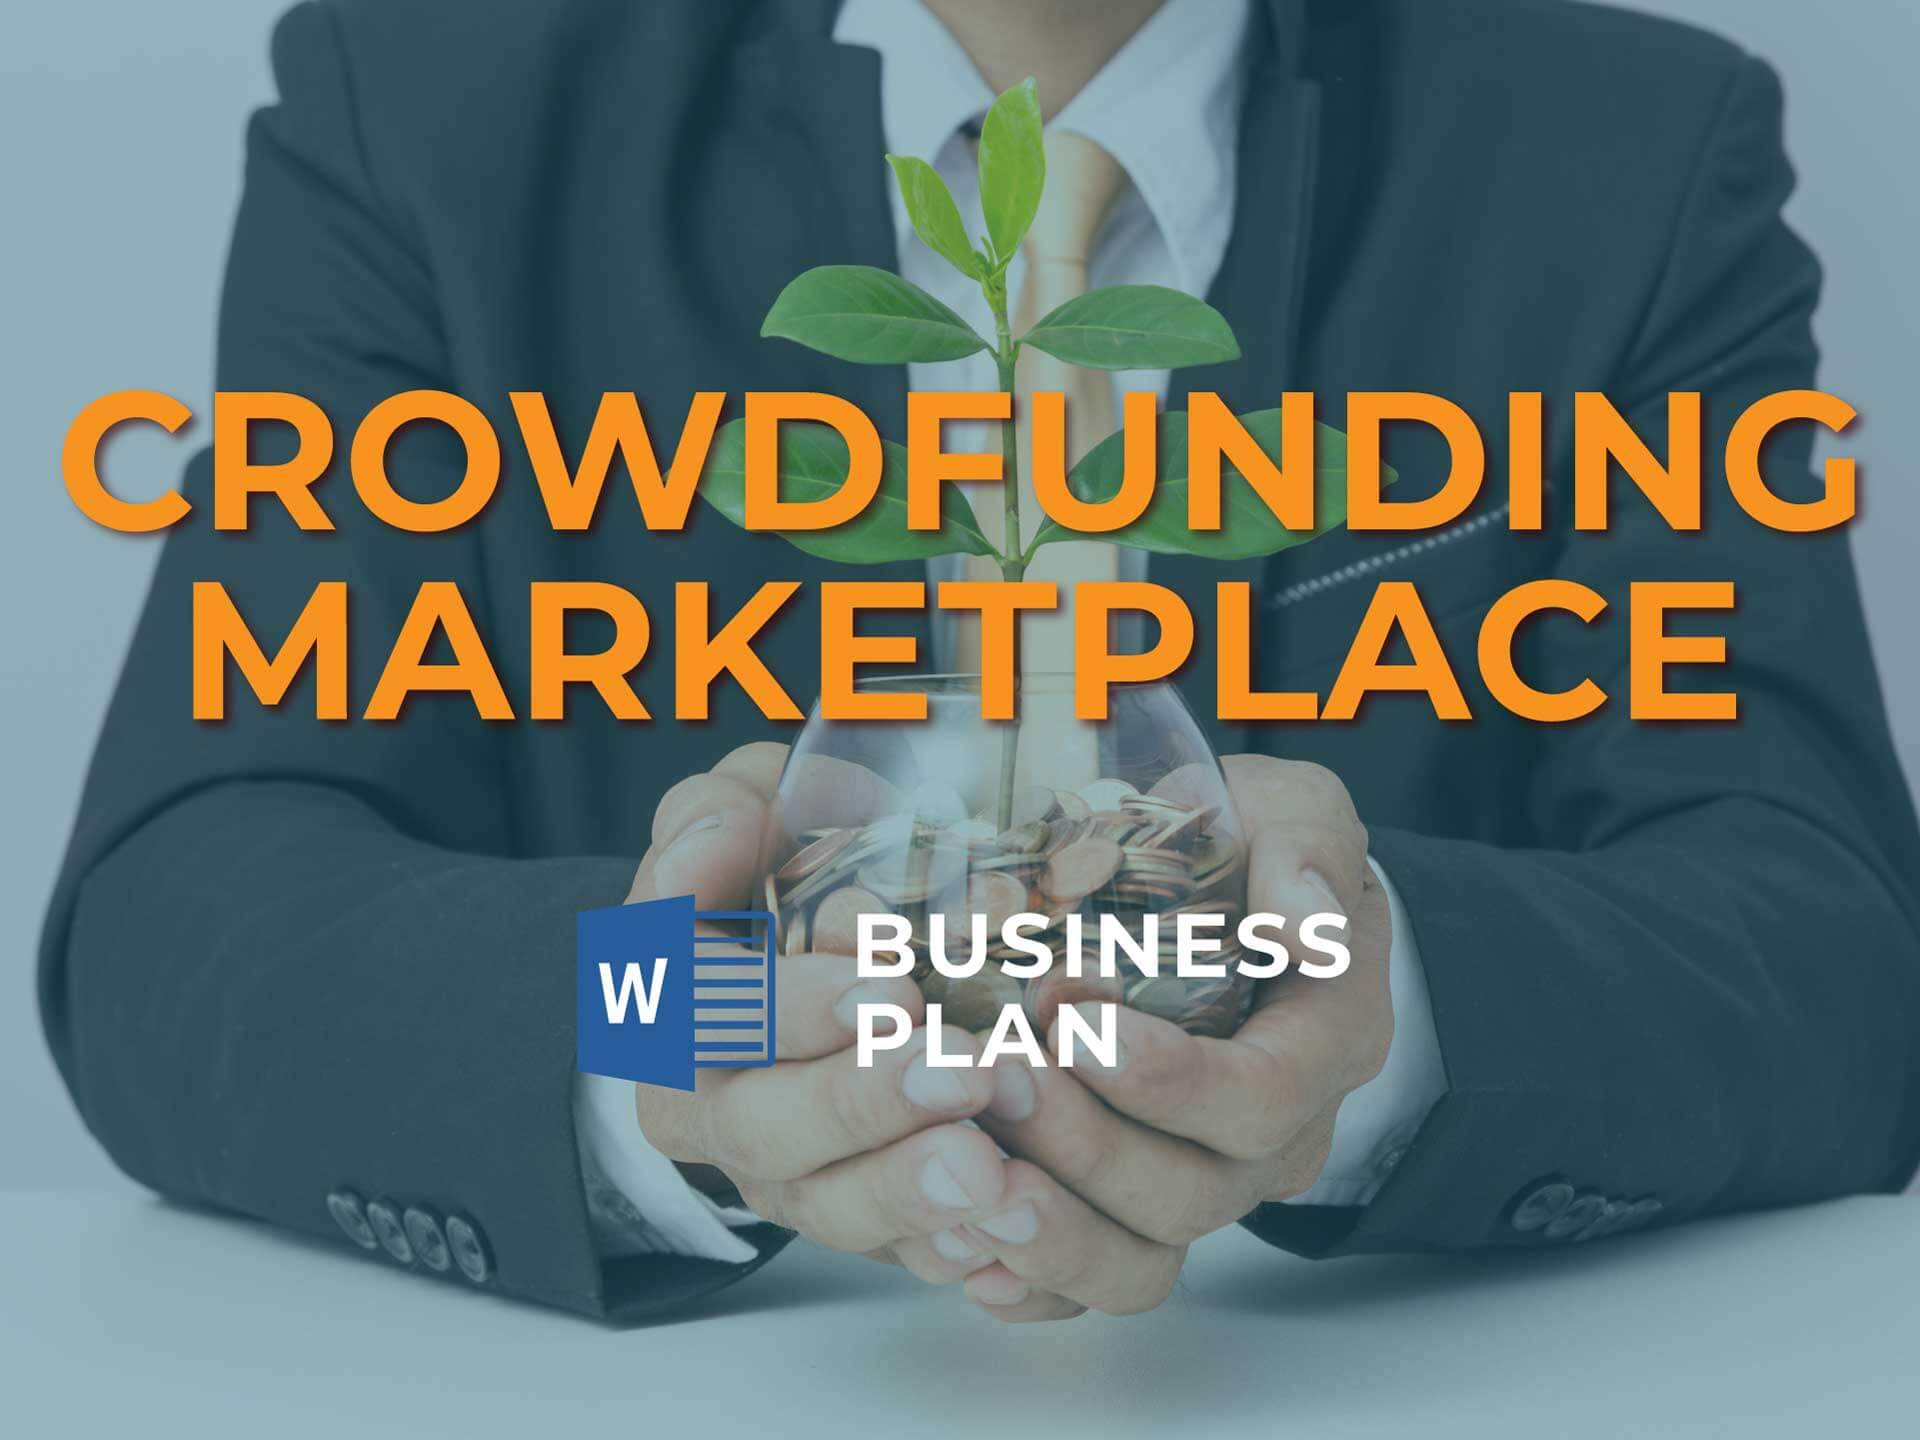 Crowdfunding Marketplace